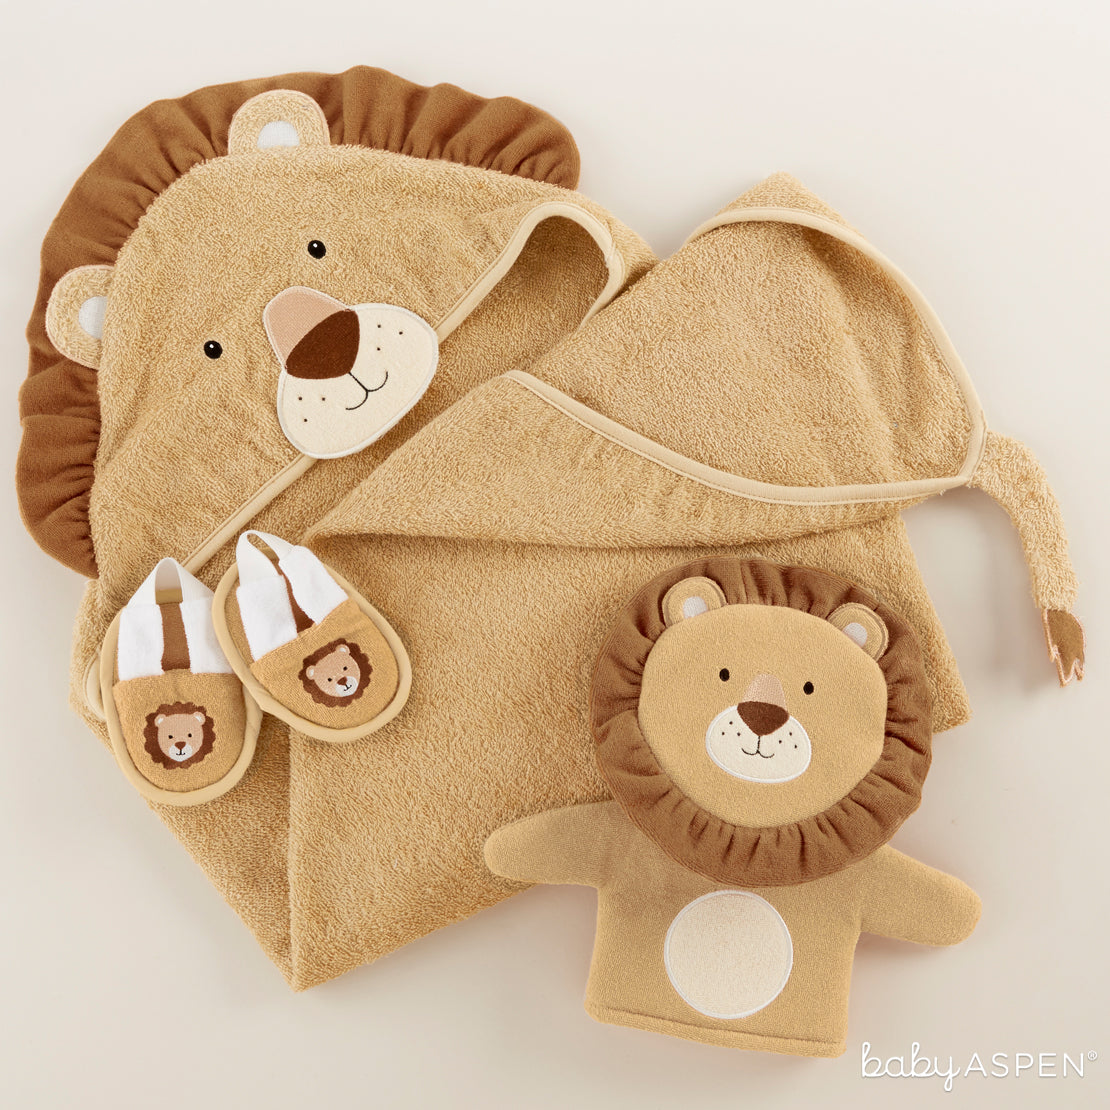 Lion Bath Set | Unique Gift Sets Perfect For Any Baby Shower | Baby Aspen